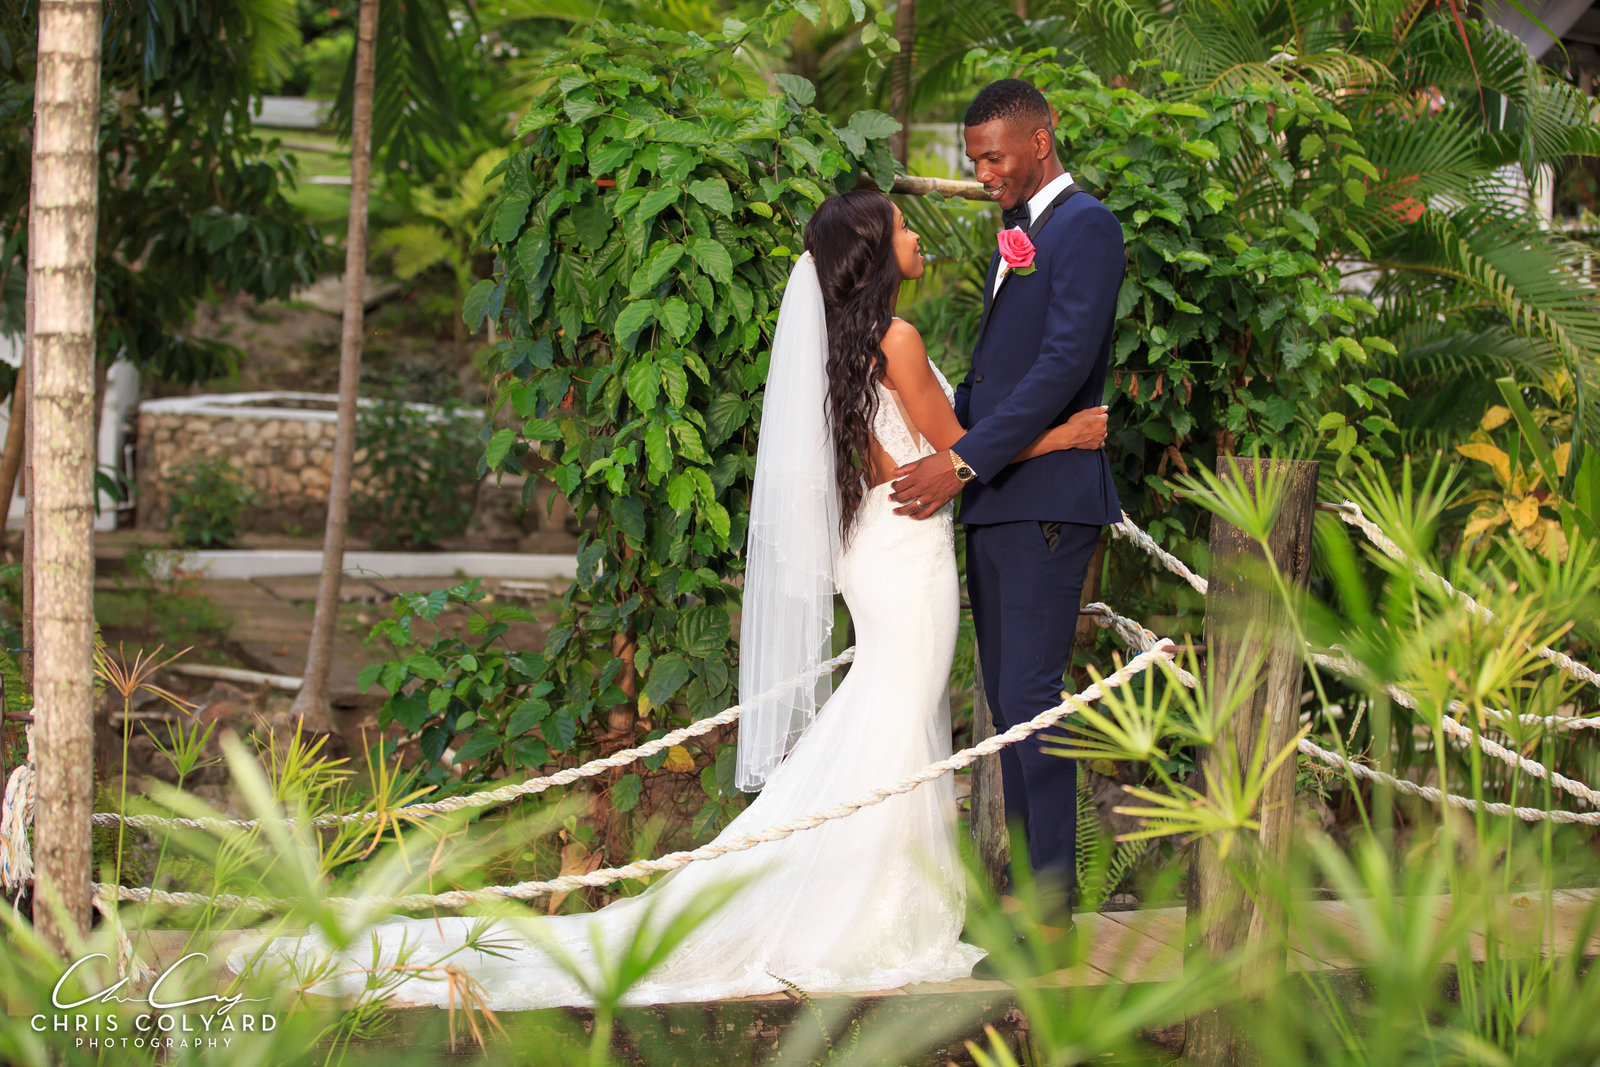 Jamaica Wedding Photographer - Chris Colyard